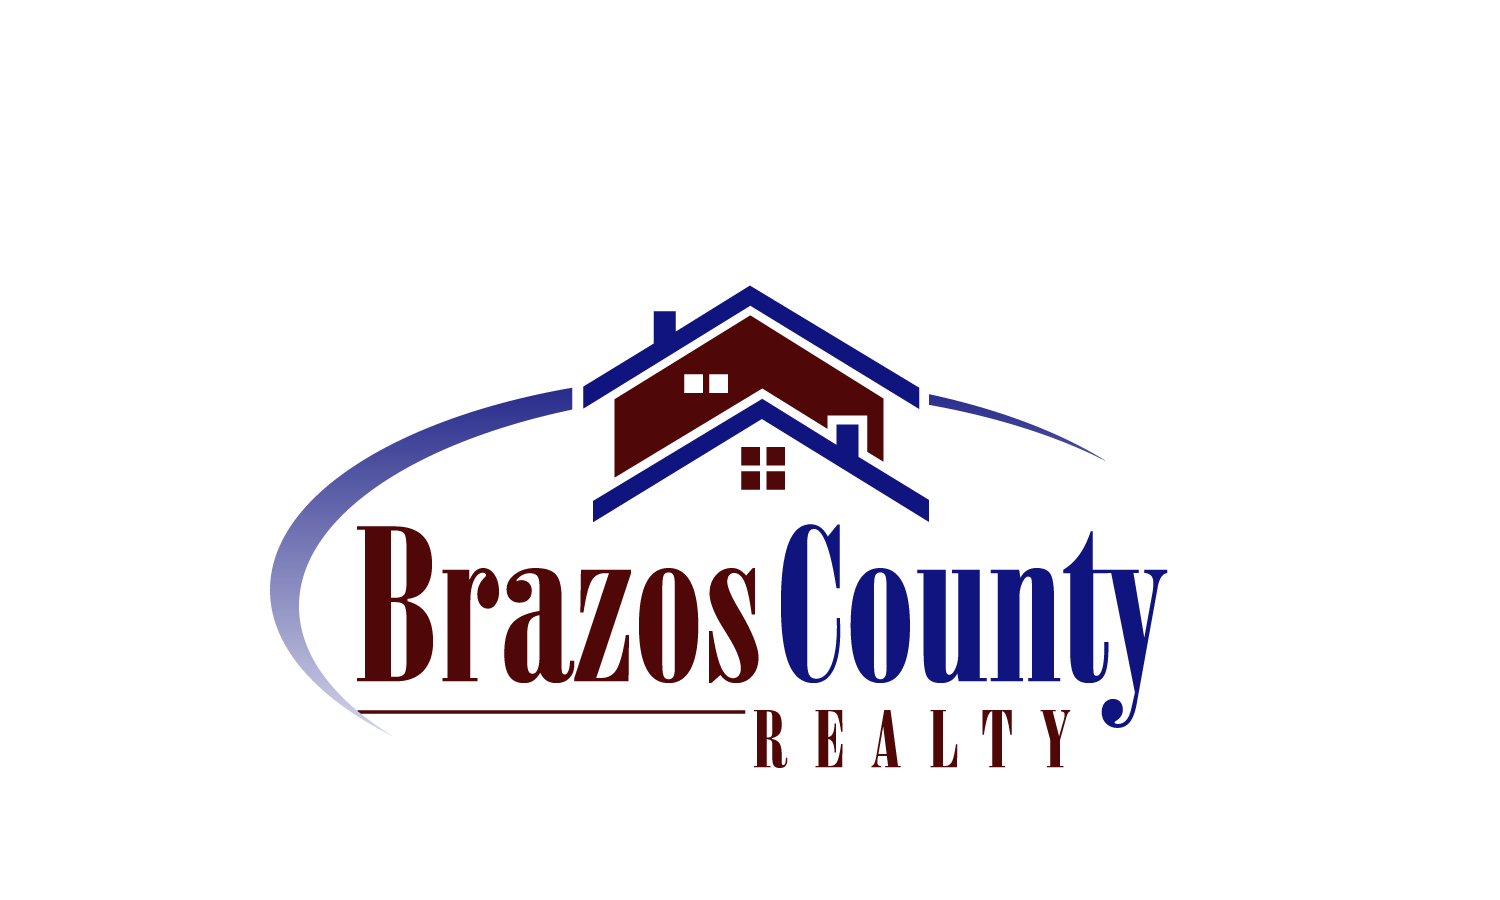 Brazos County Realty image 3